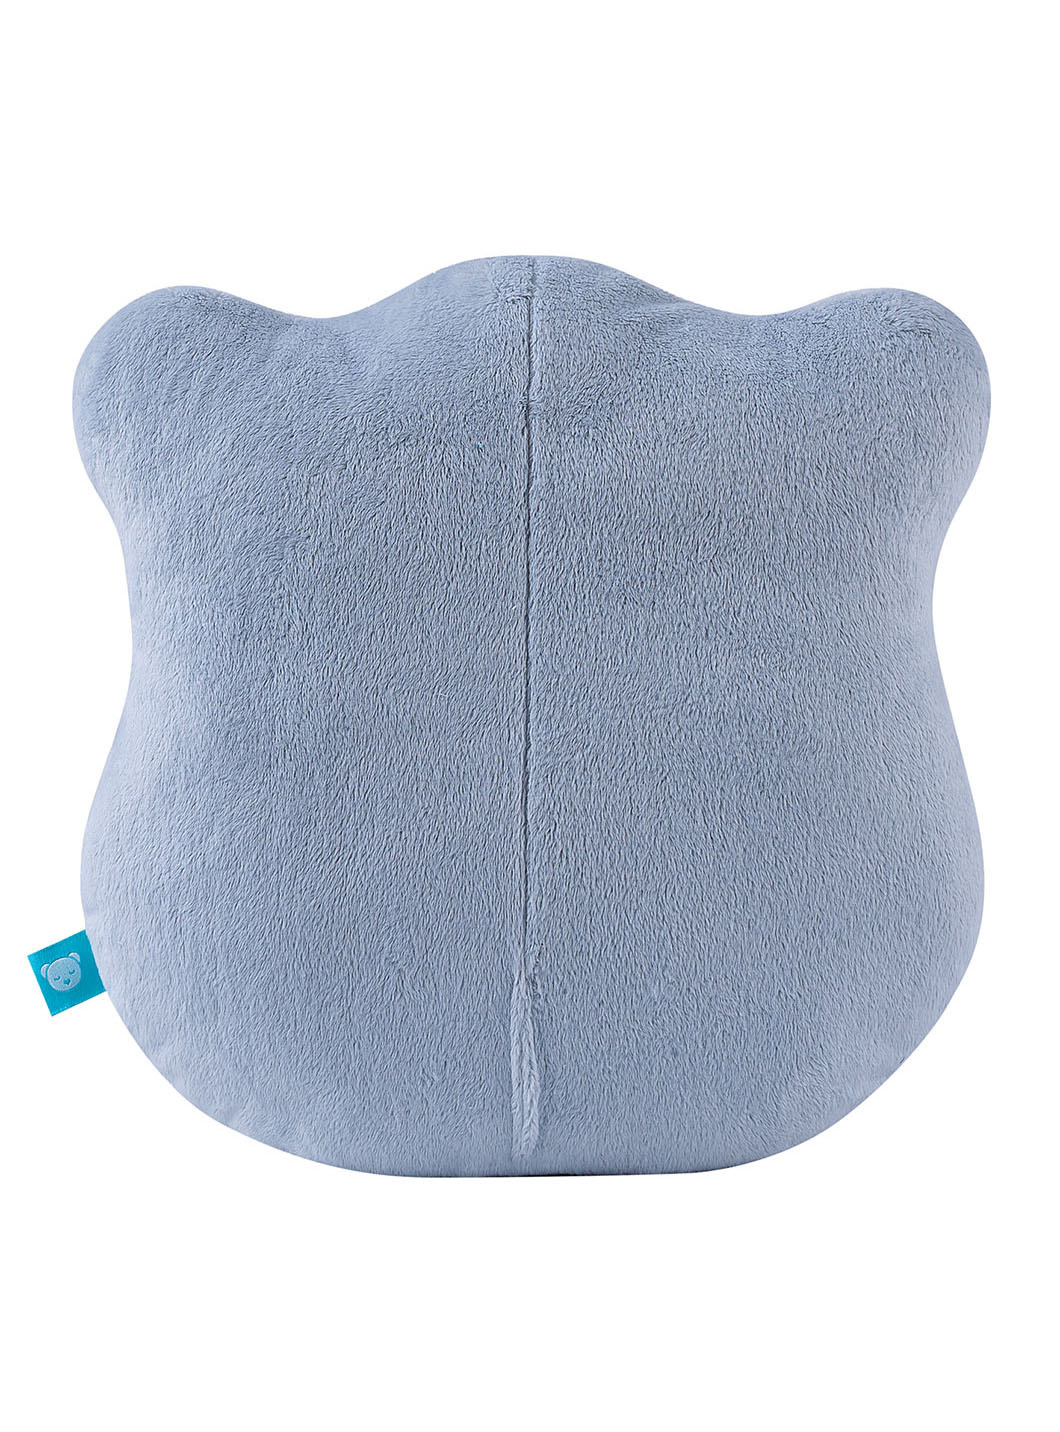 myHummy Cushion - light grey